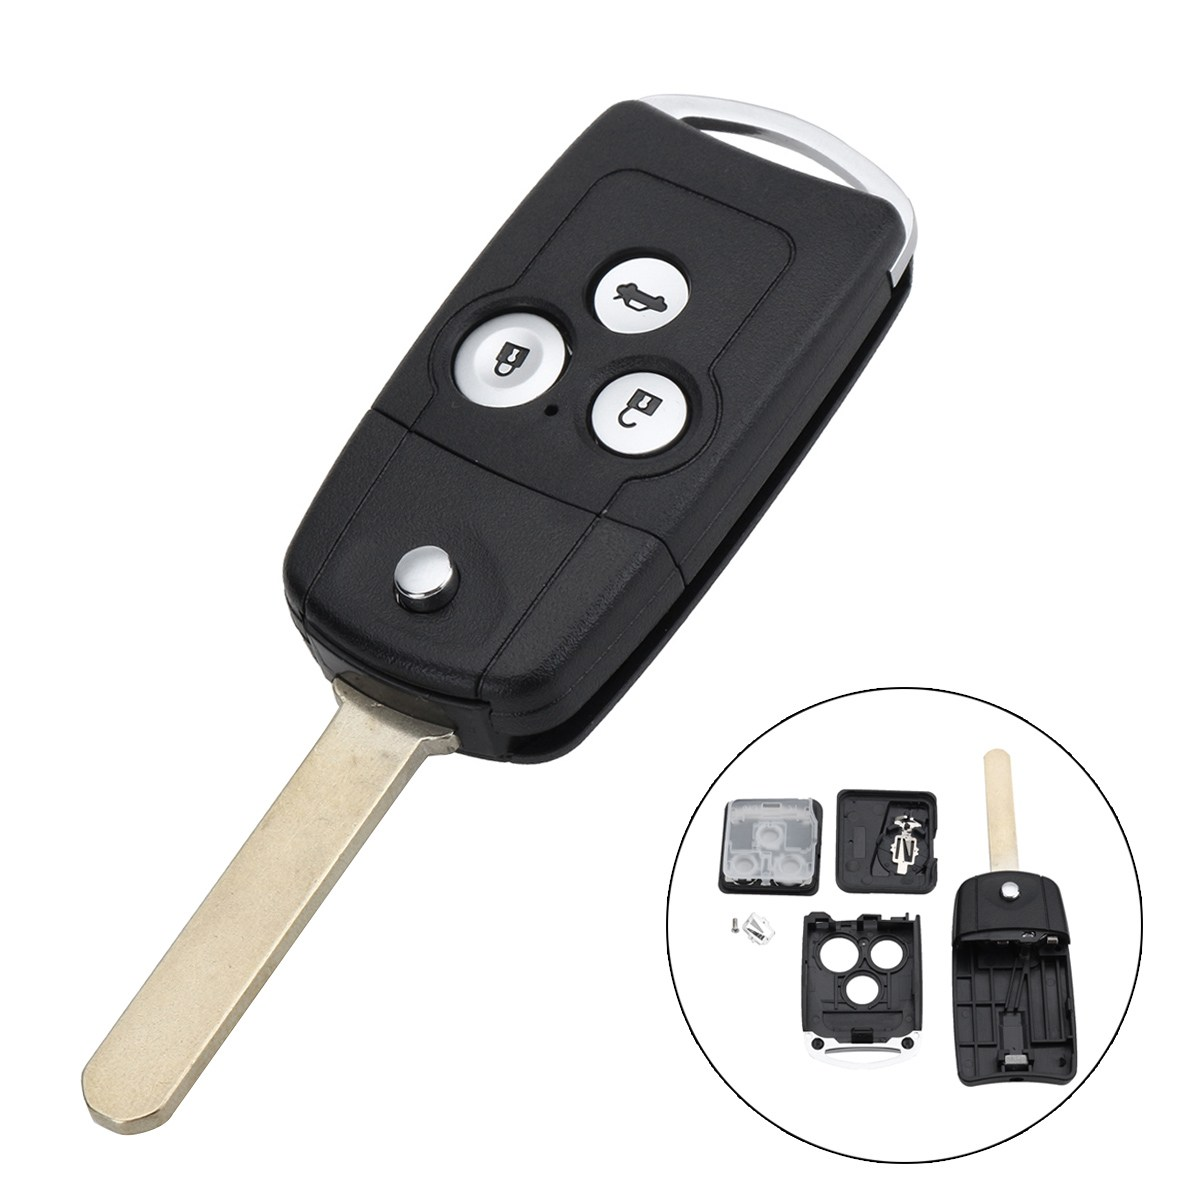 3 Buttons Car Remote Flip Key Fob Case Shell Upgrade For Honda for Civic for Accord Jazz CRV new car remote key fob cover case holder protect for honda 2016 2017 crv pilot accord civic fit freed keyless entry car styling